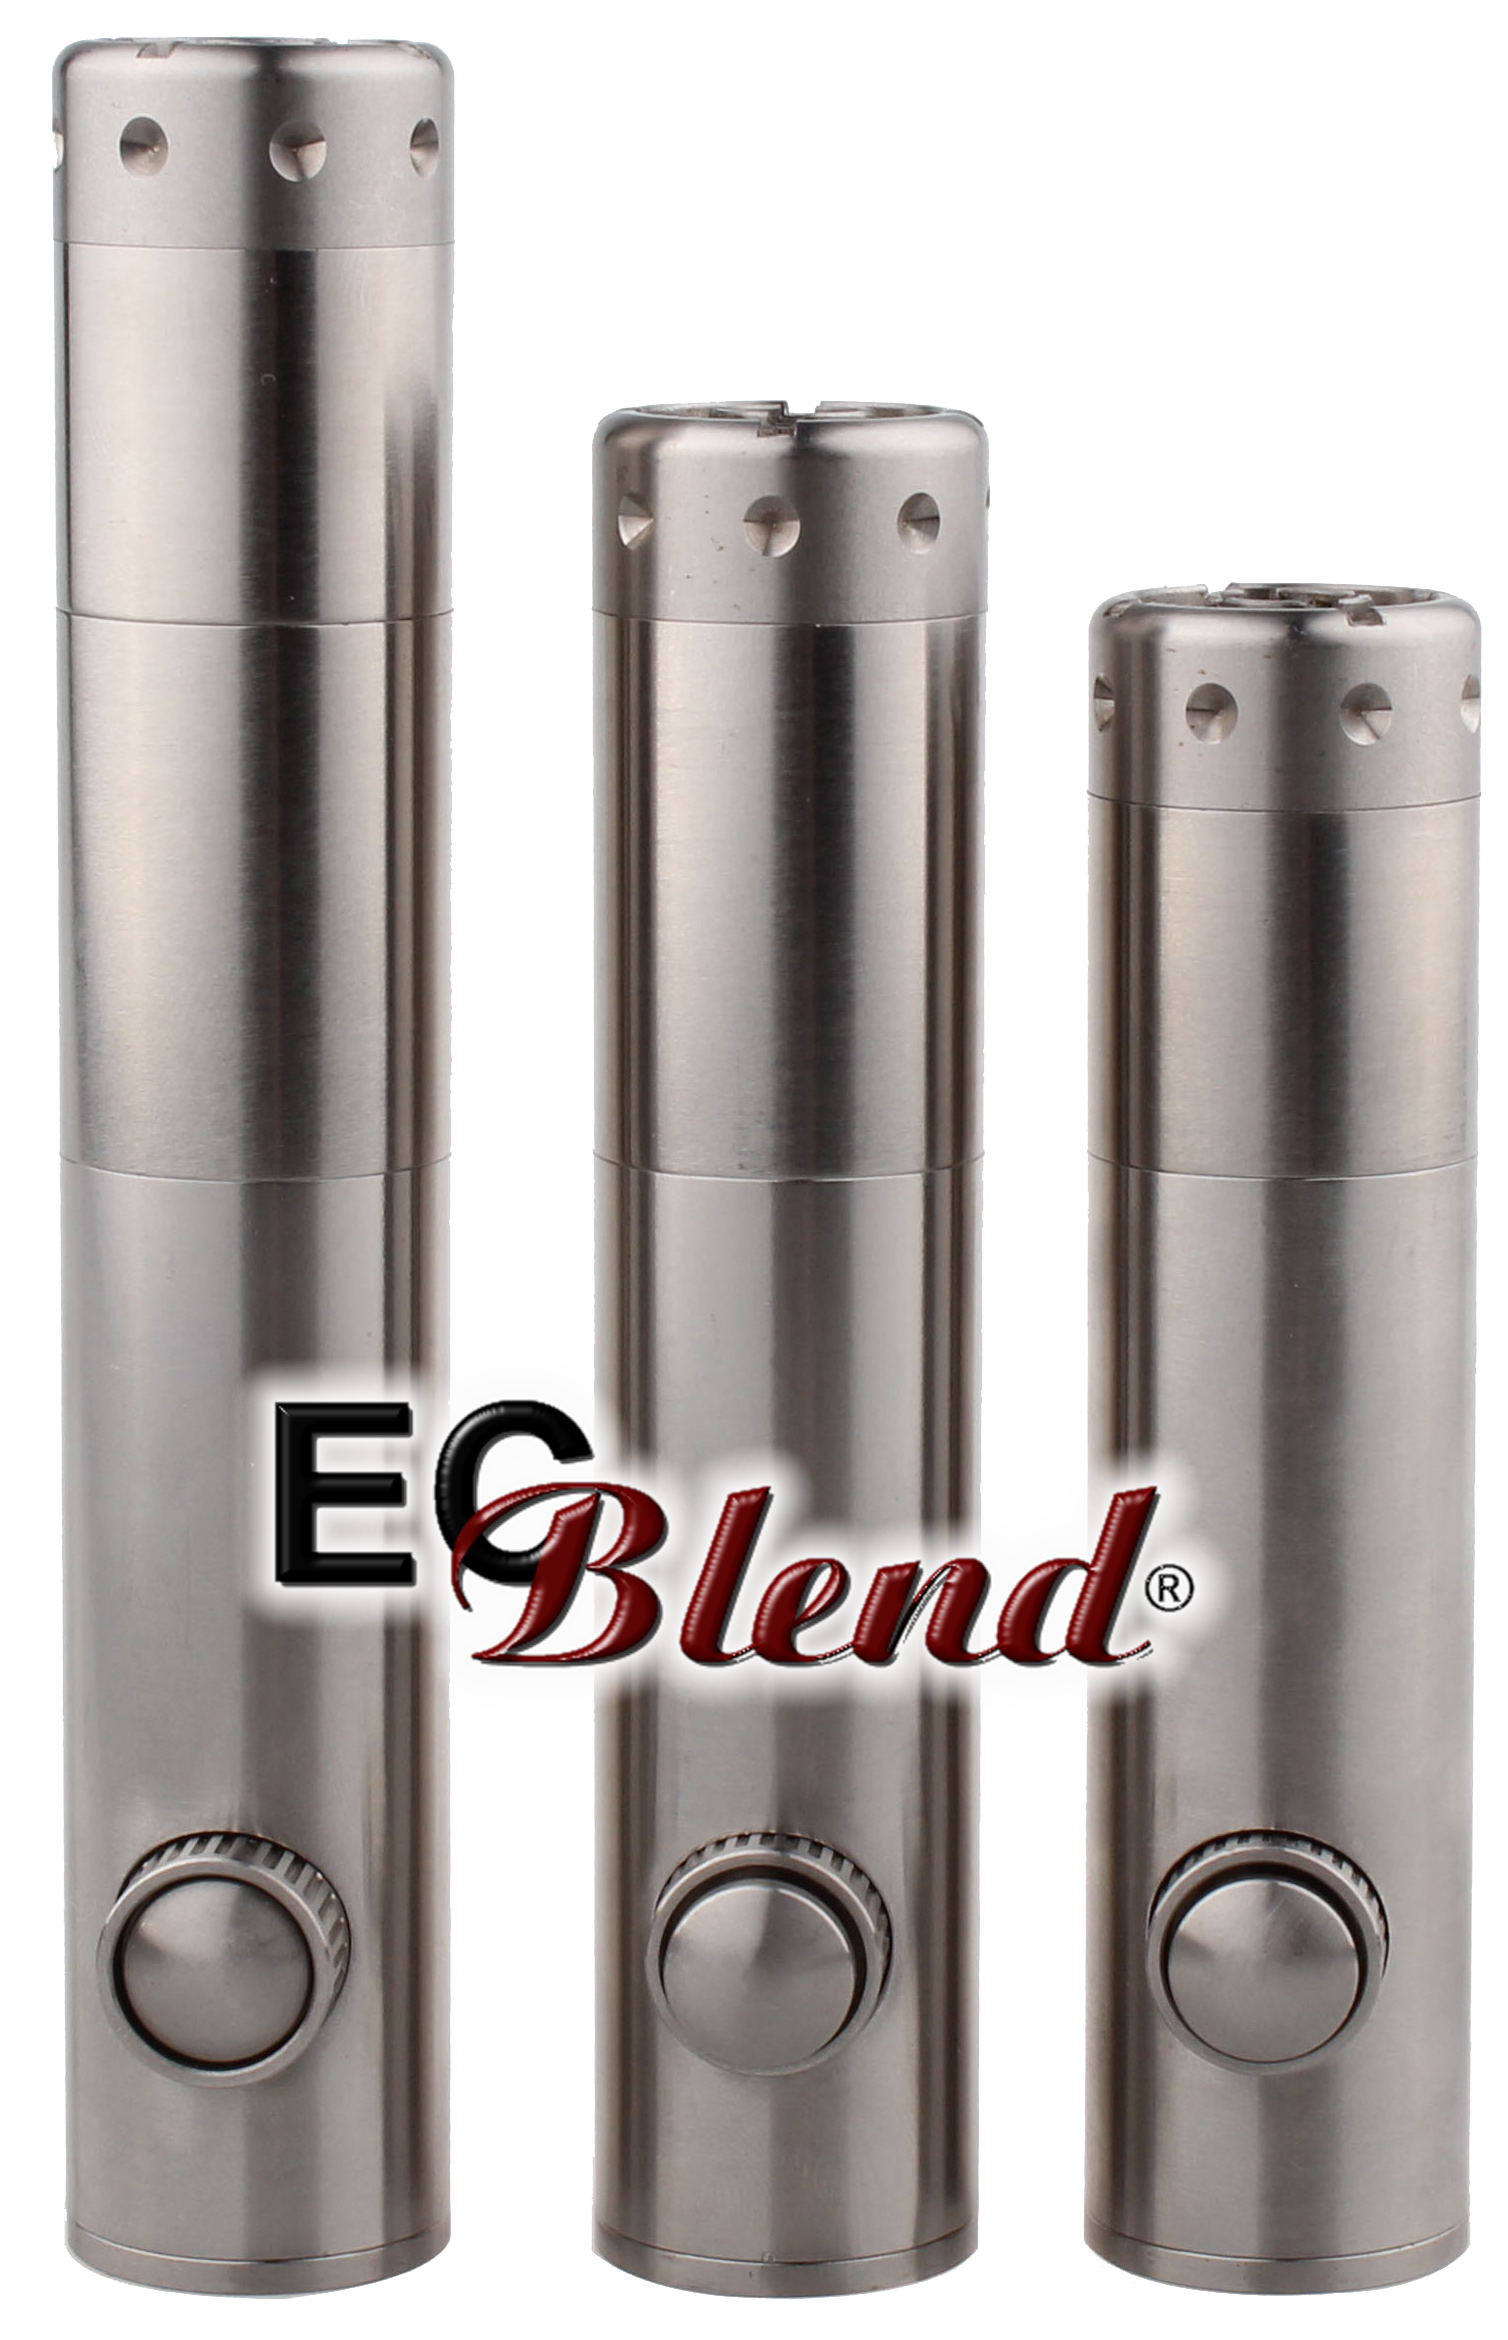 Personal Vaporizer (aka E-Cig) - The Natural by SmokTech